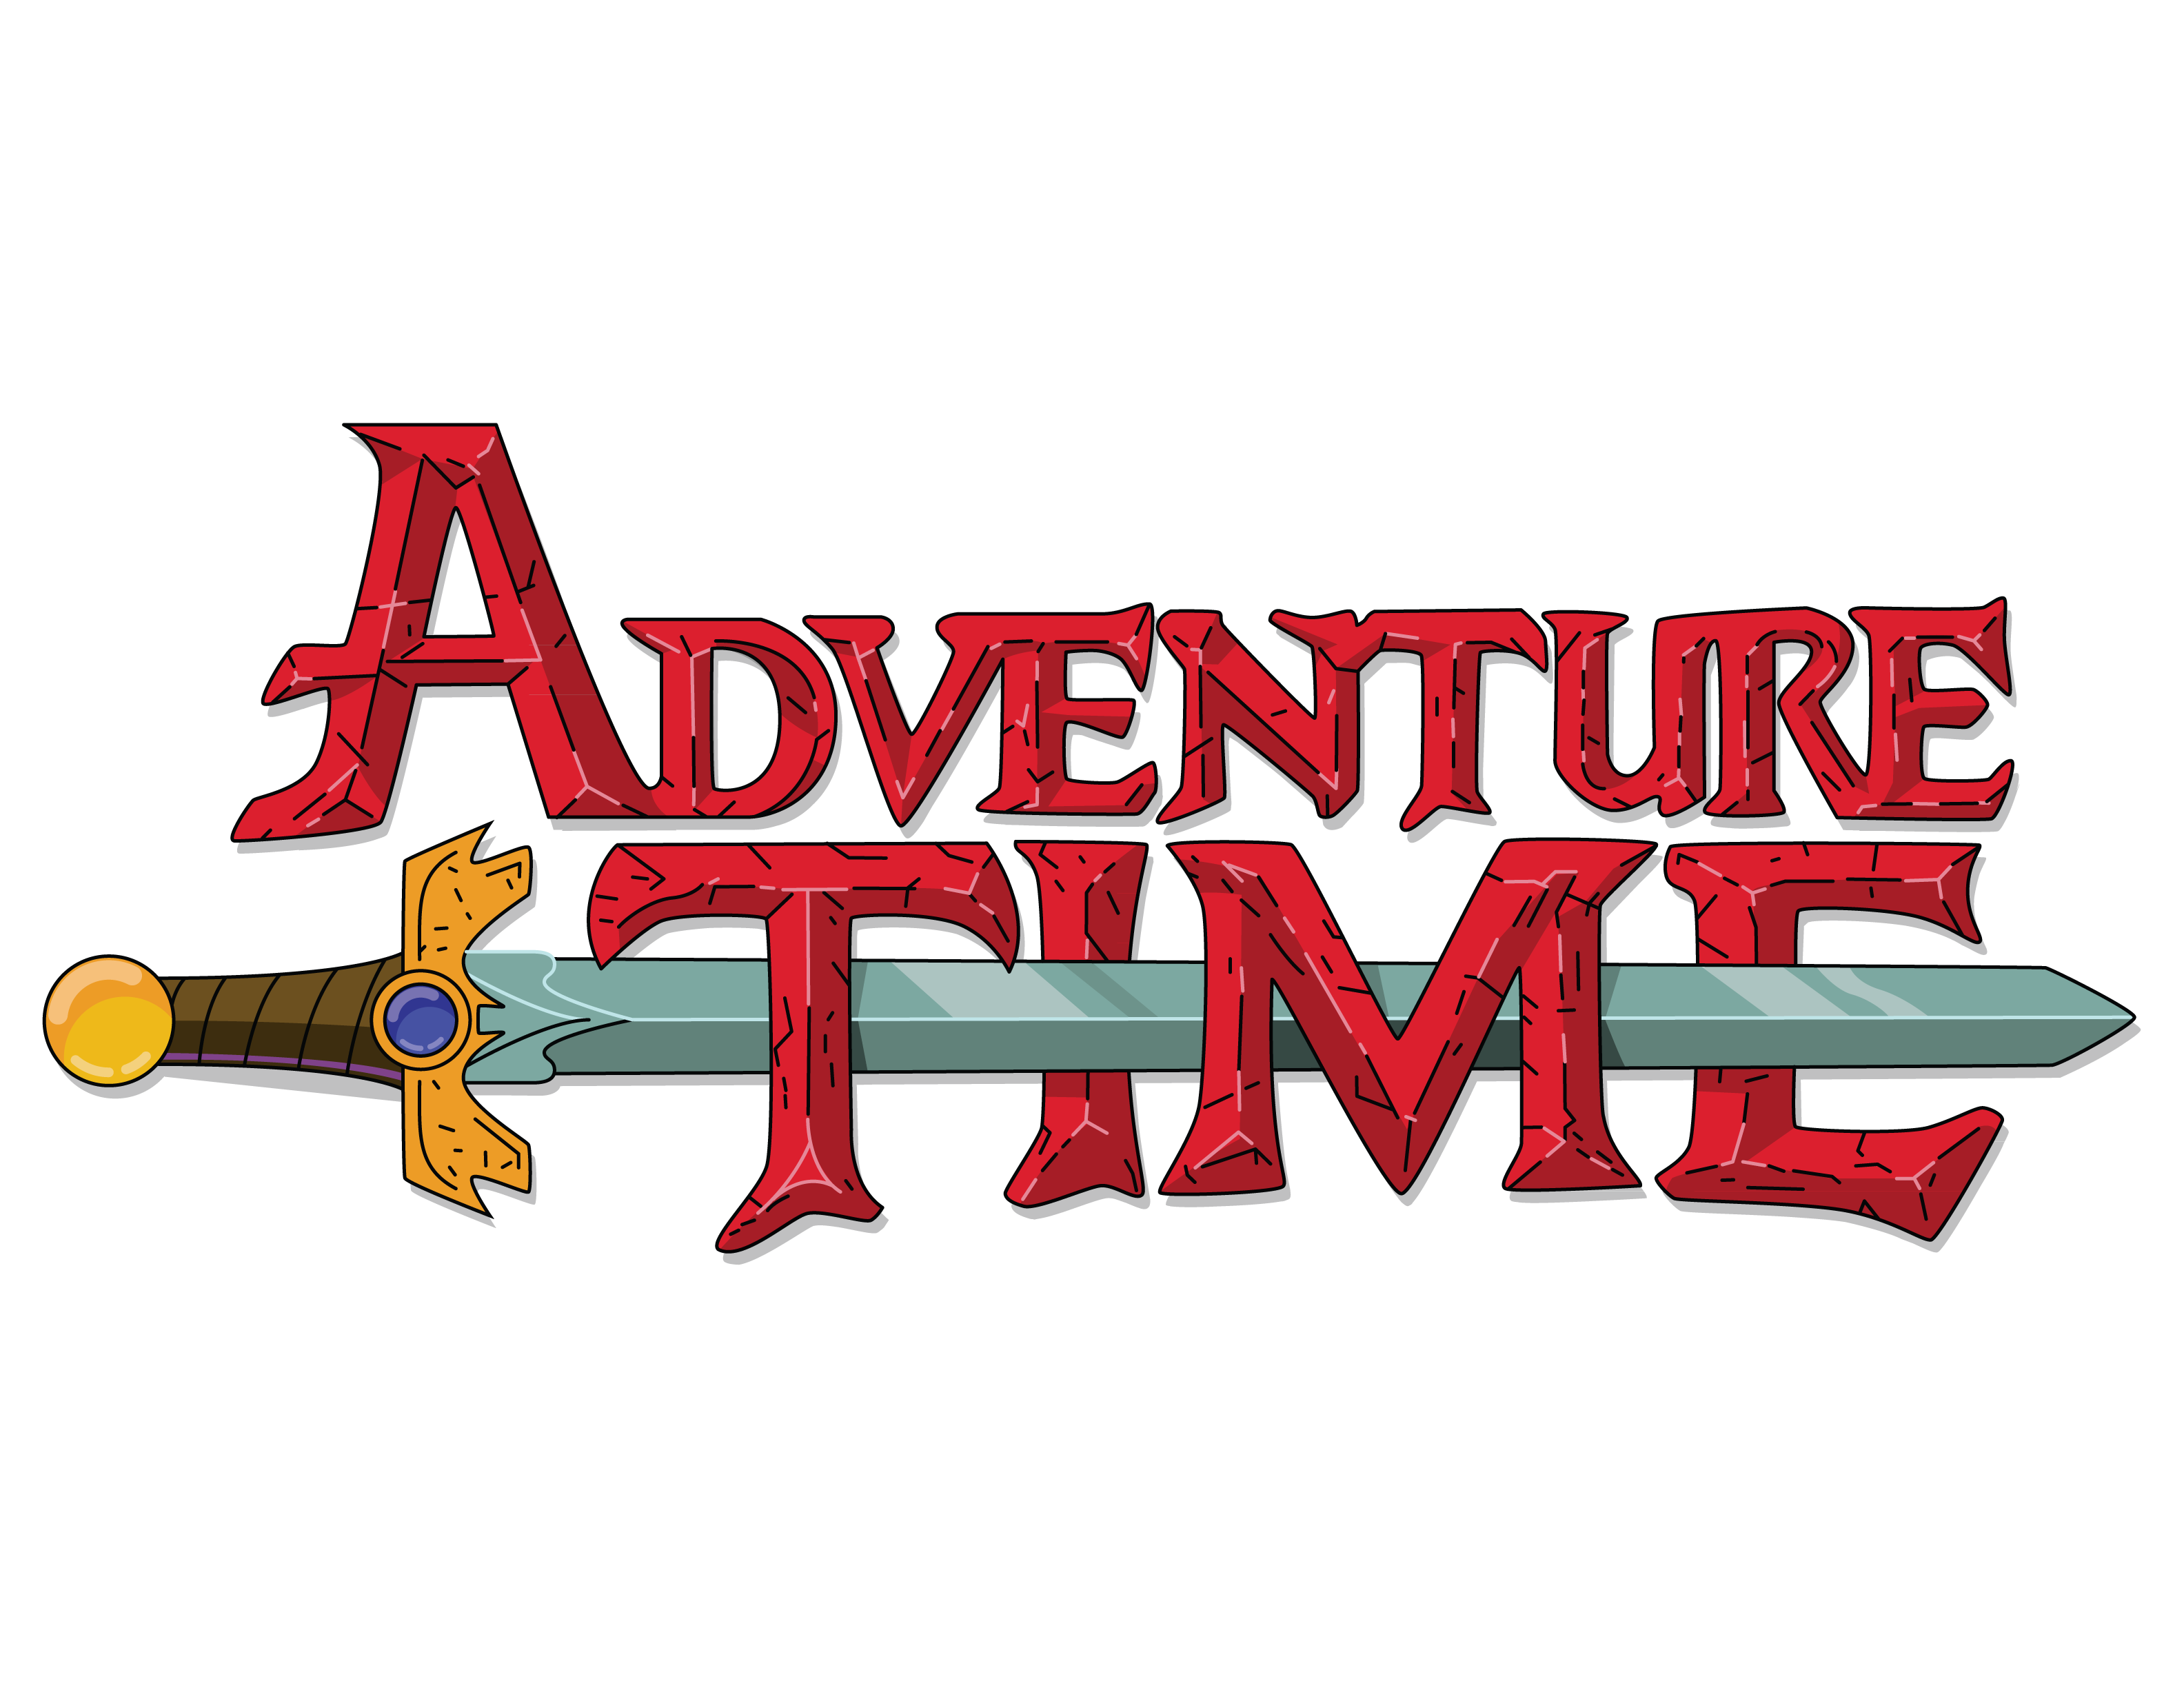 Adventure time logo png. Vectorized with way more